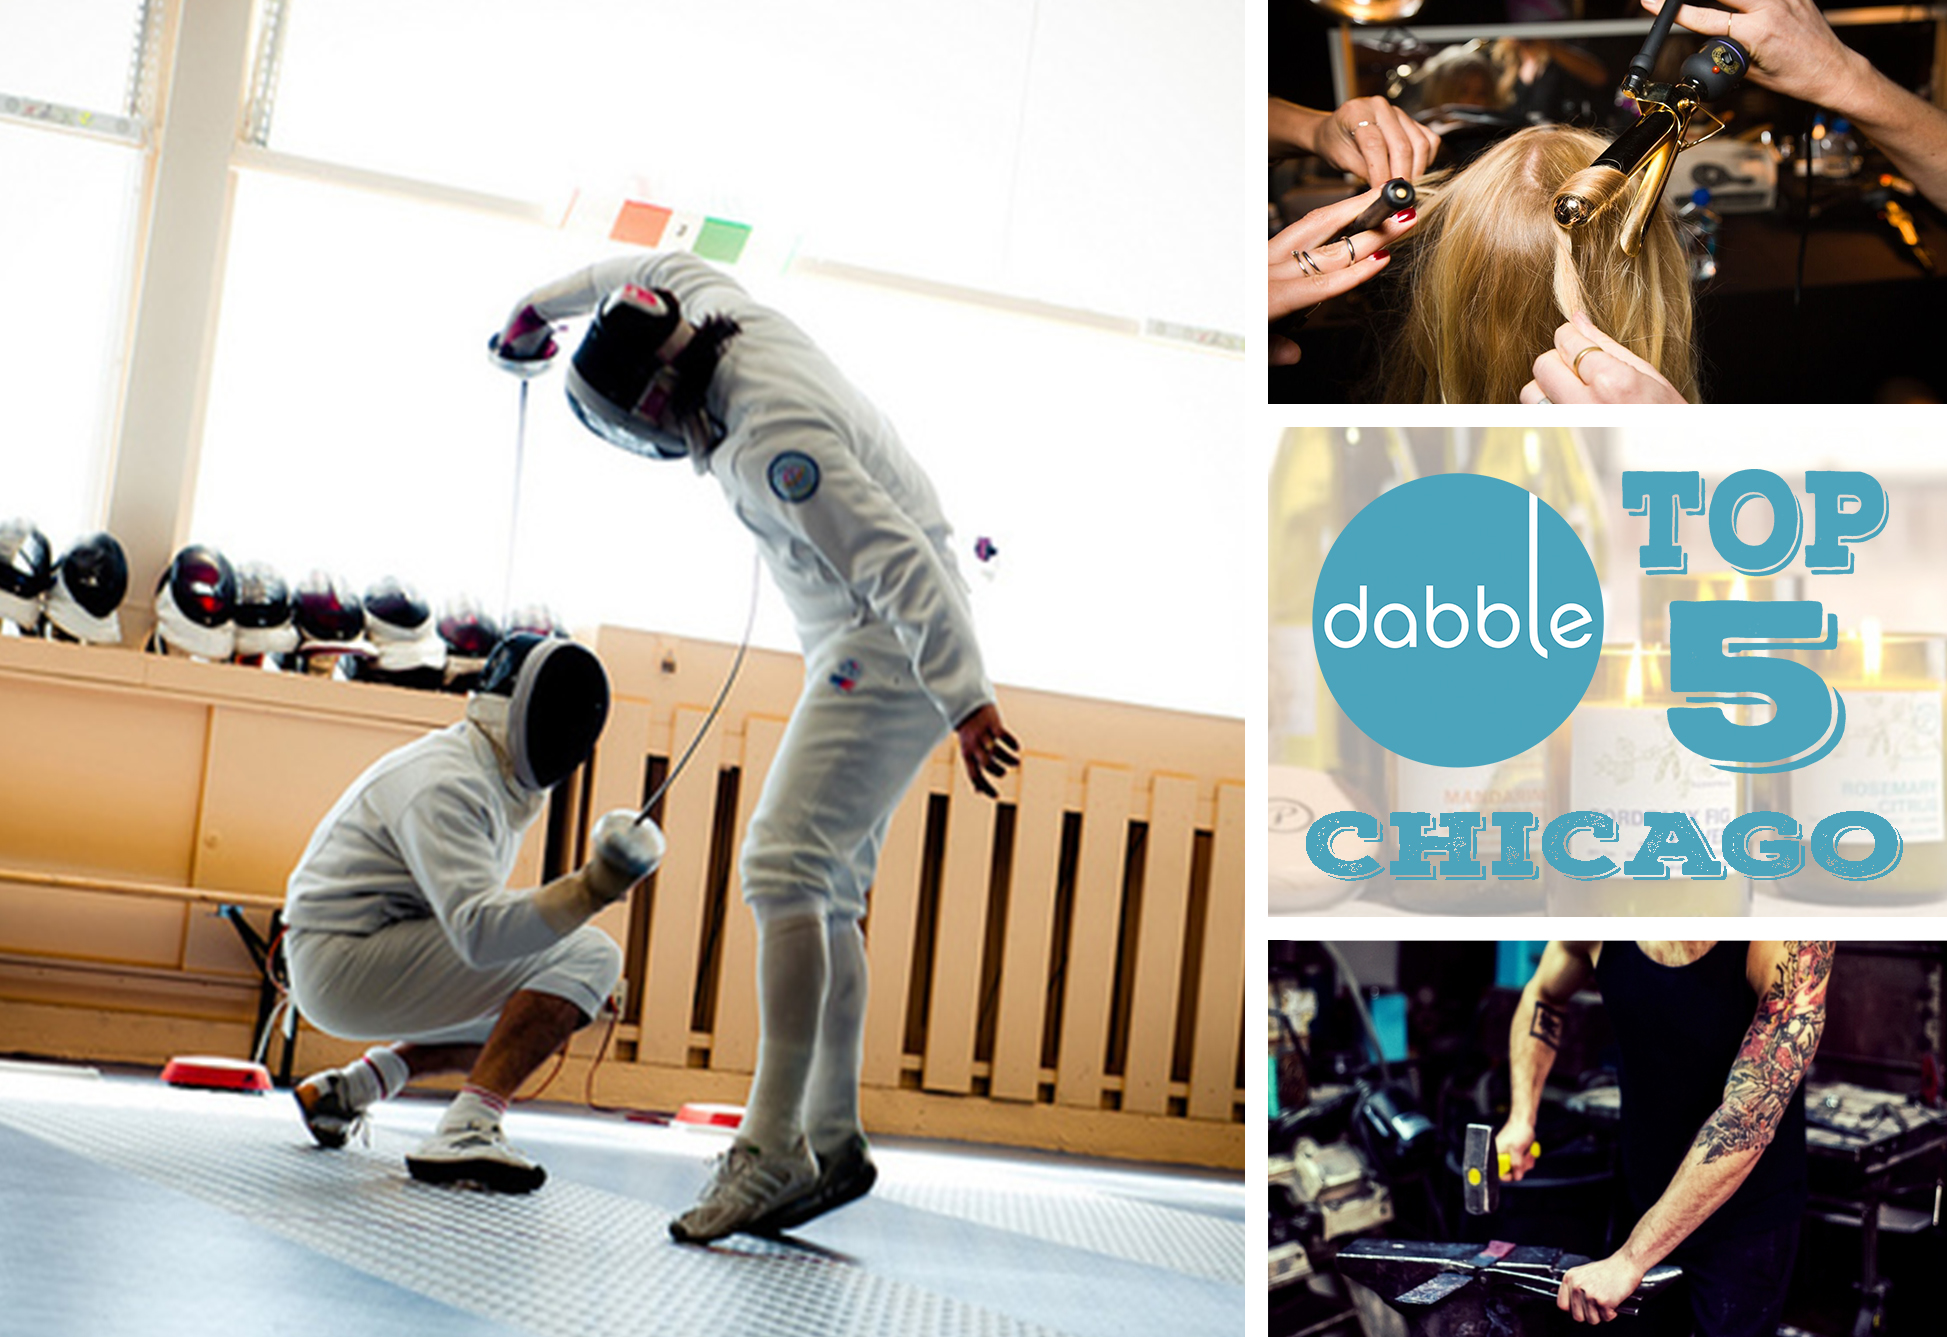 Chicago's Top 5 Dabble Experiences